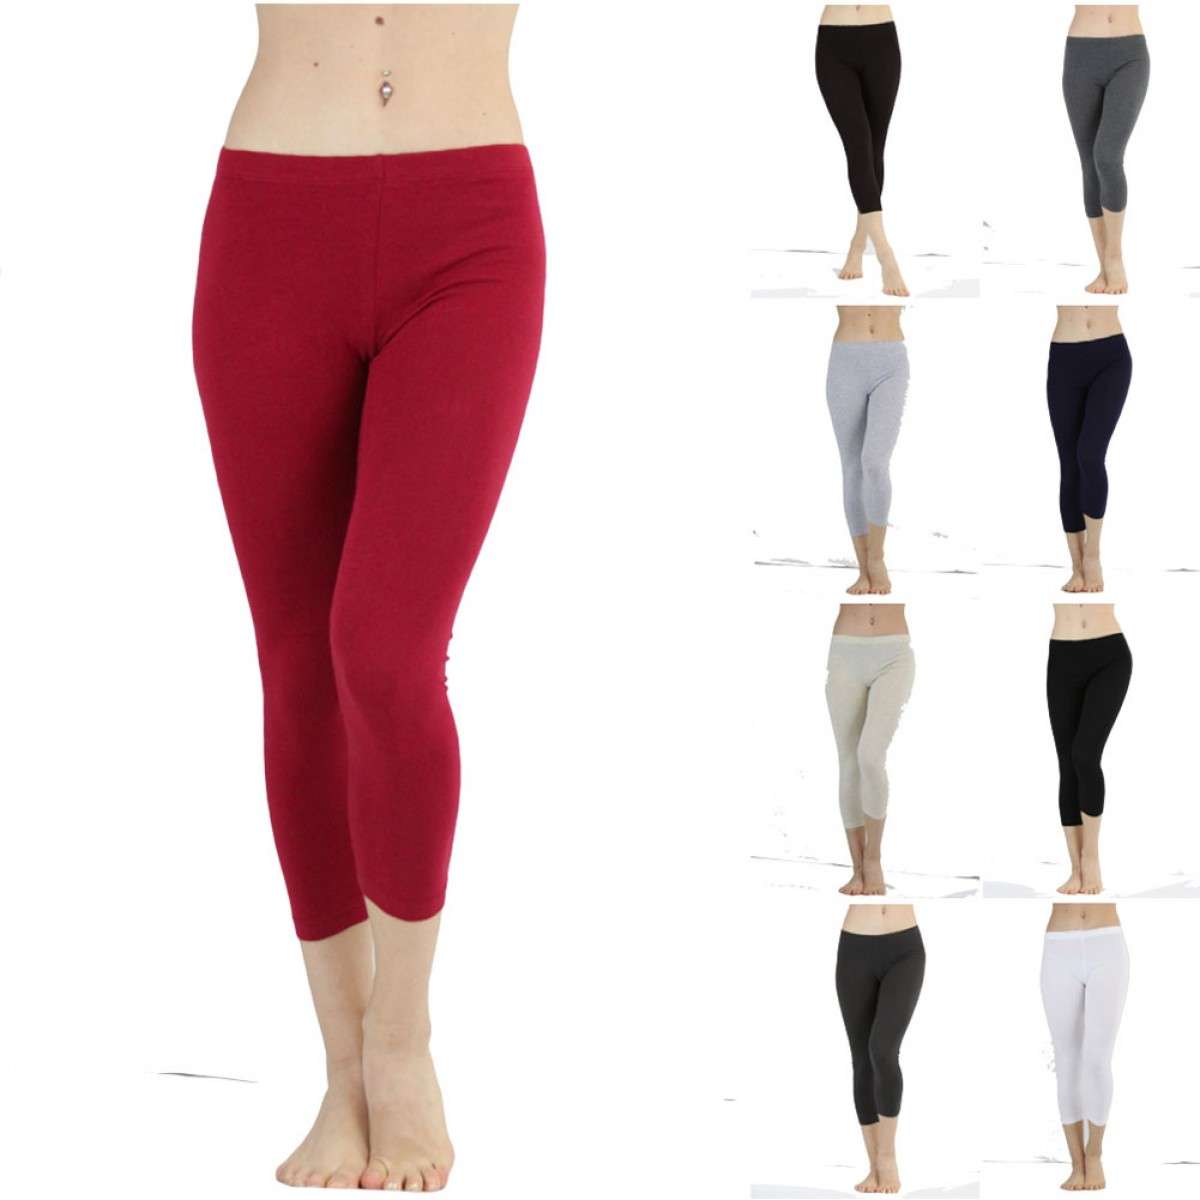 Cotton Capri Leggings Photo Album - Reikian